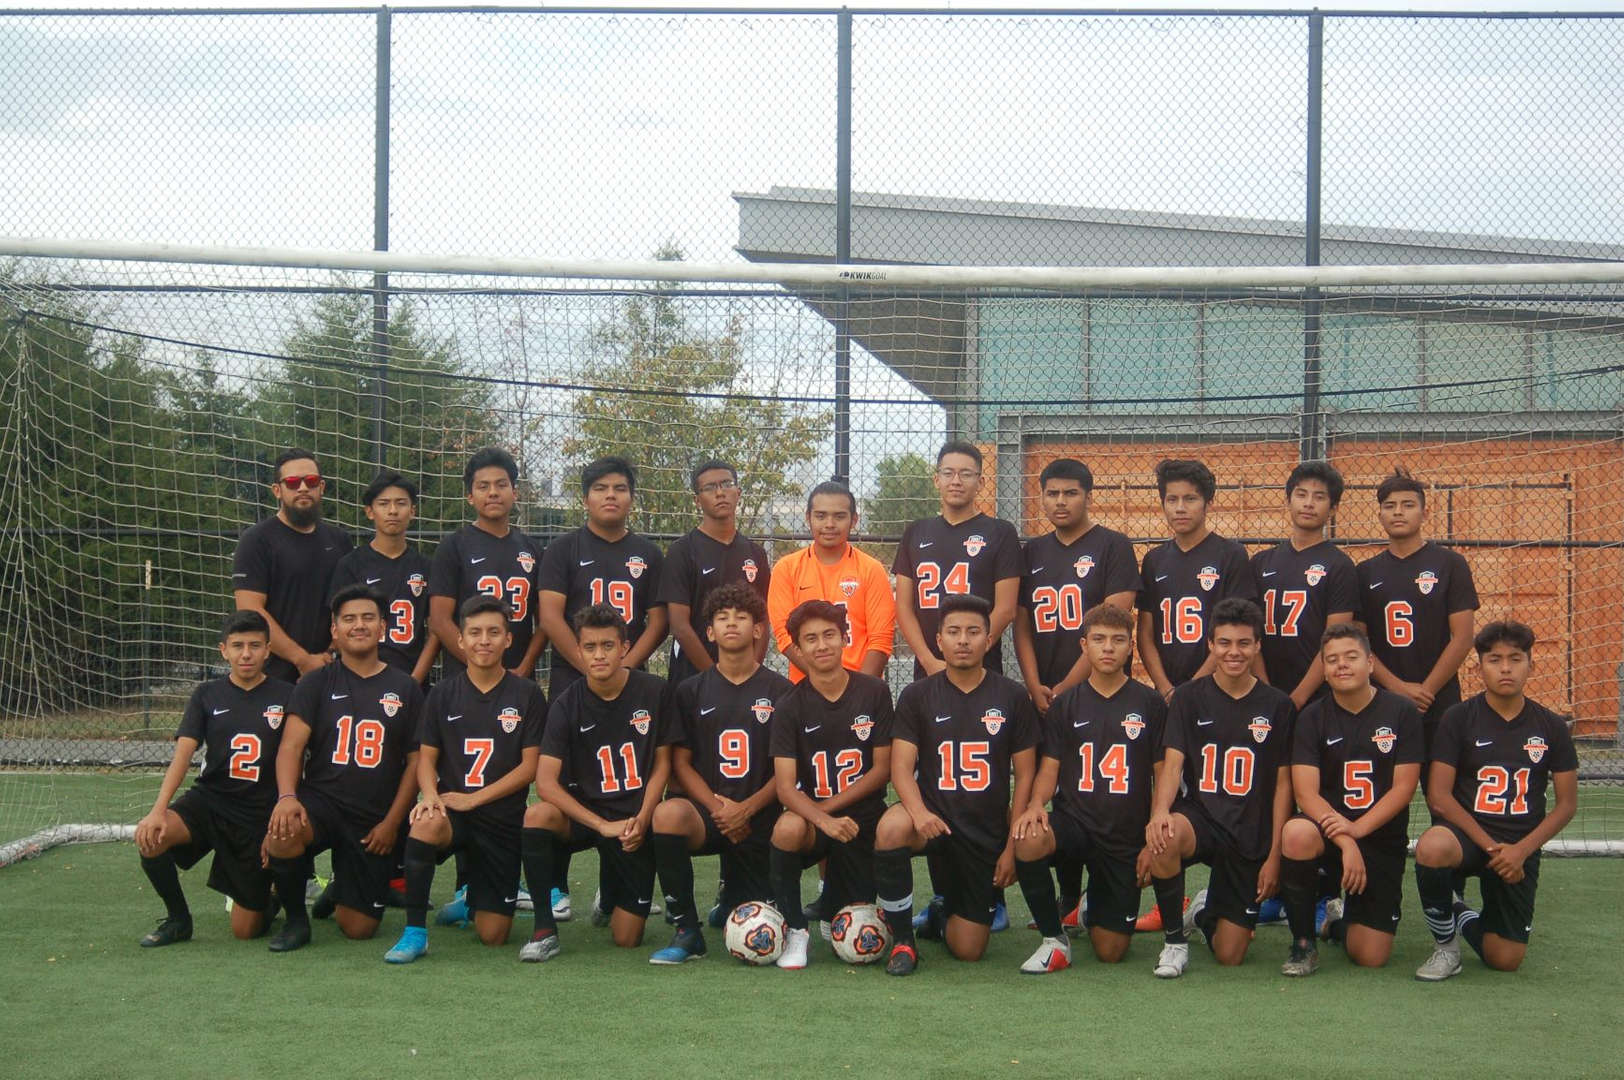 2019-2020 Boys Soccer Team